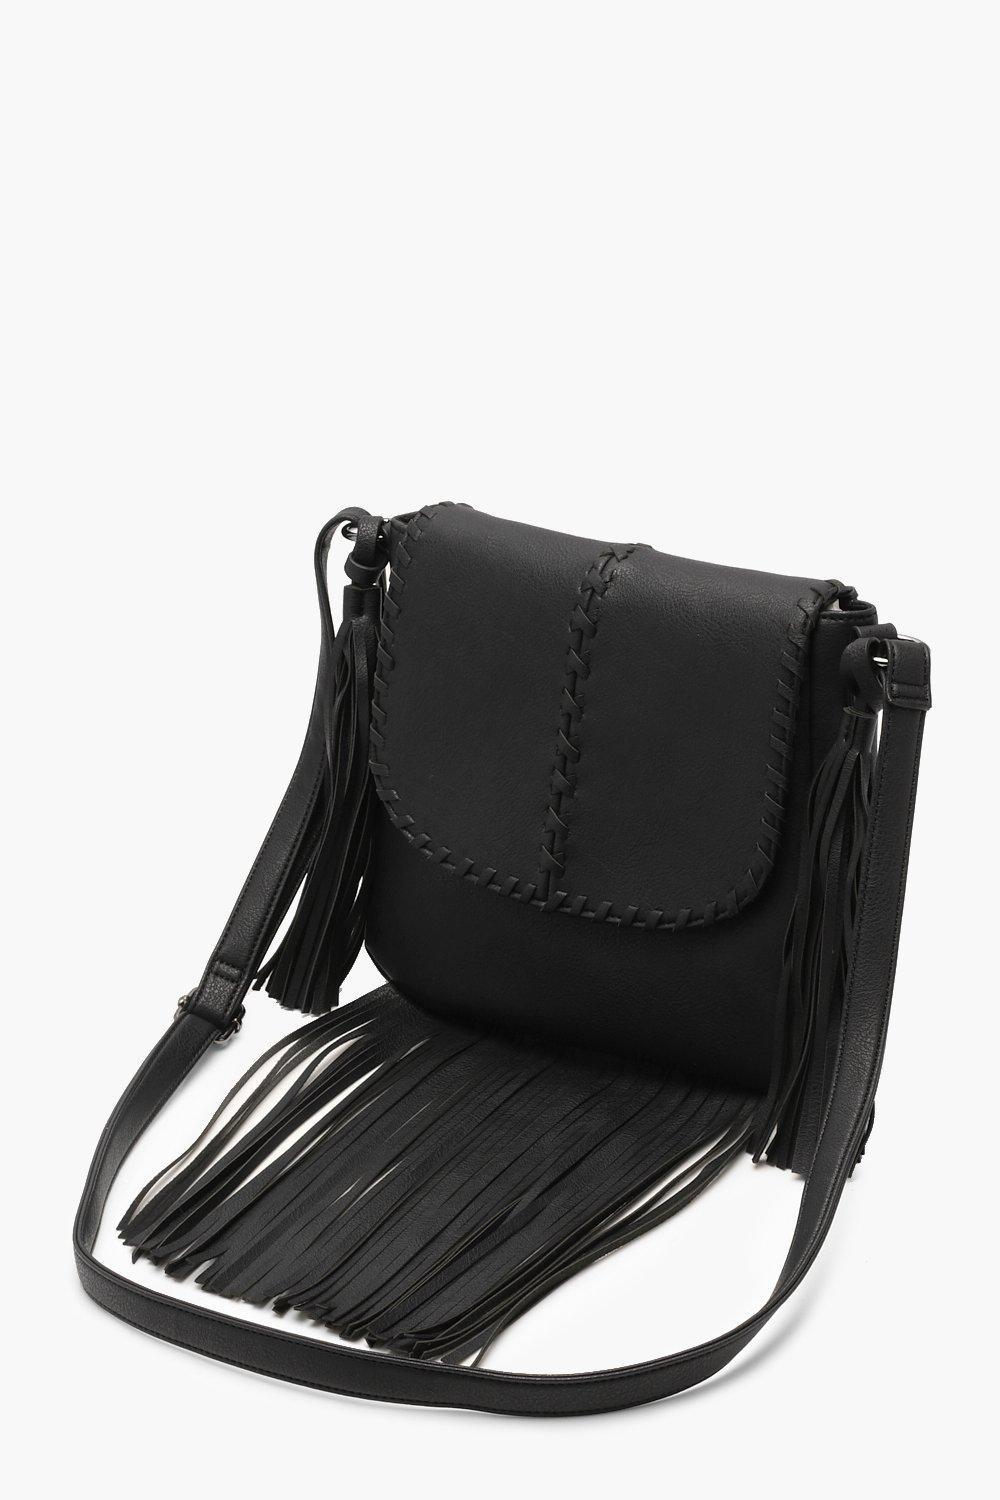 Lyst - Boohoo Whip Stitch   Fringe Cross Body Bag in Black ea9393c6f9bb9